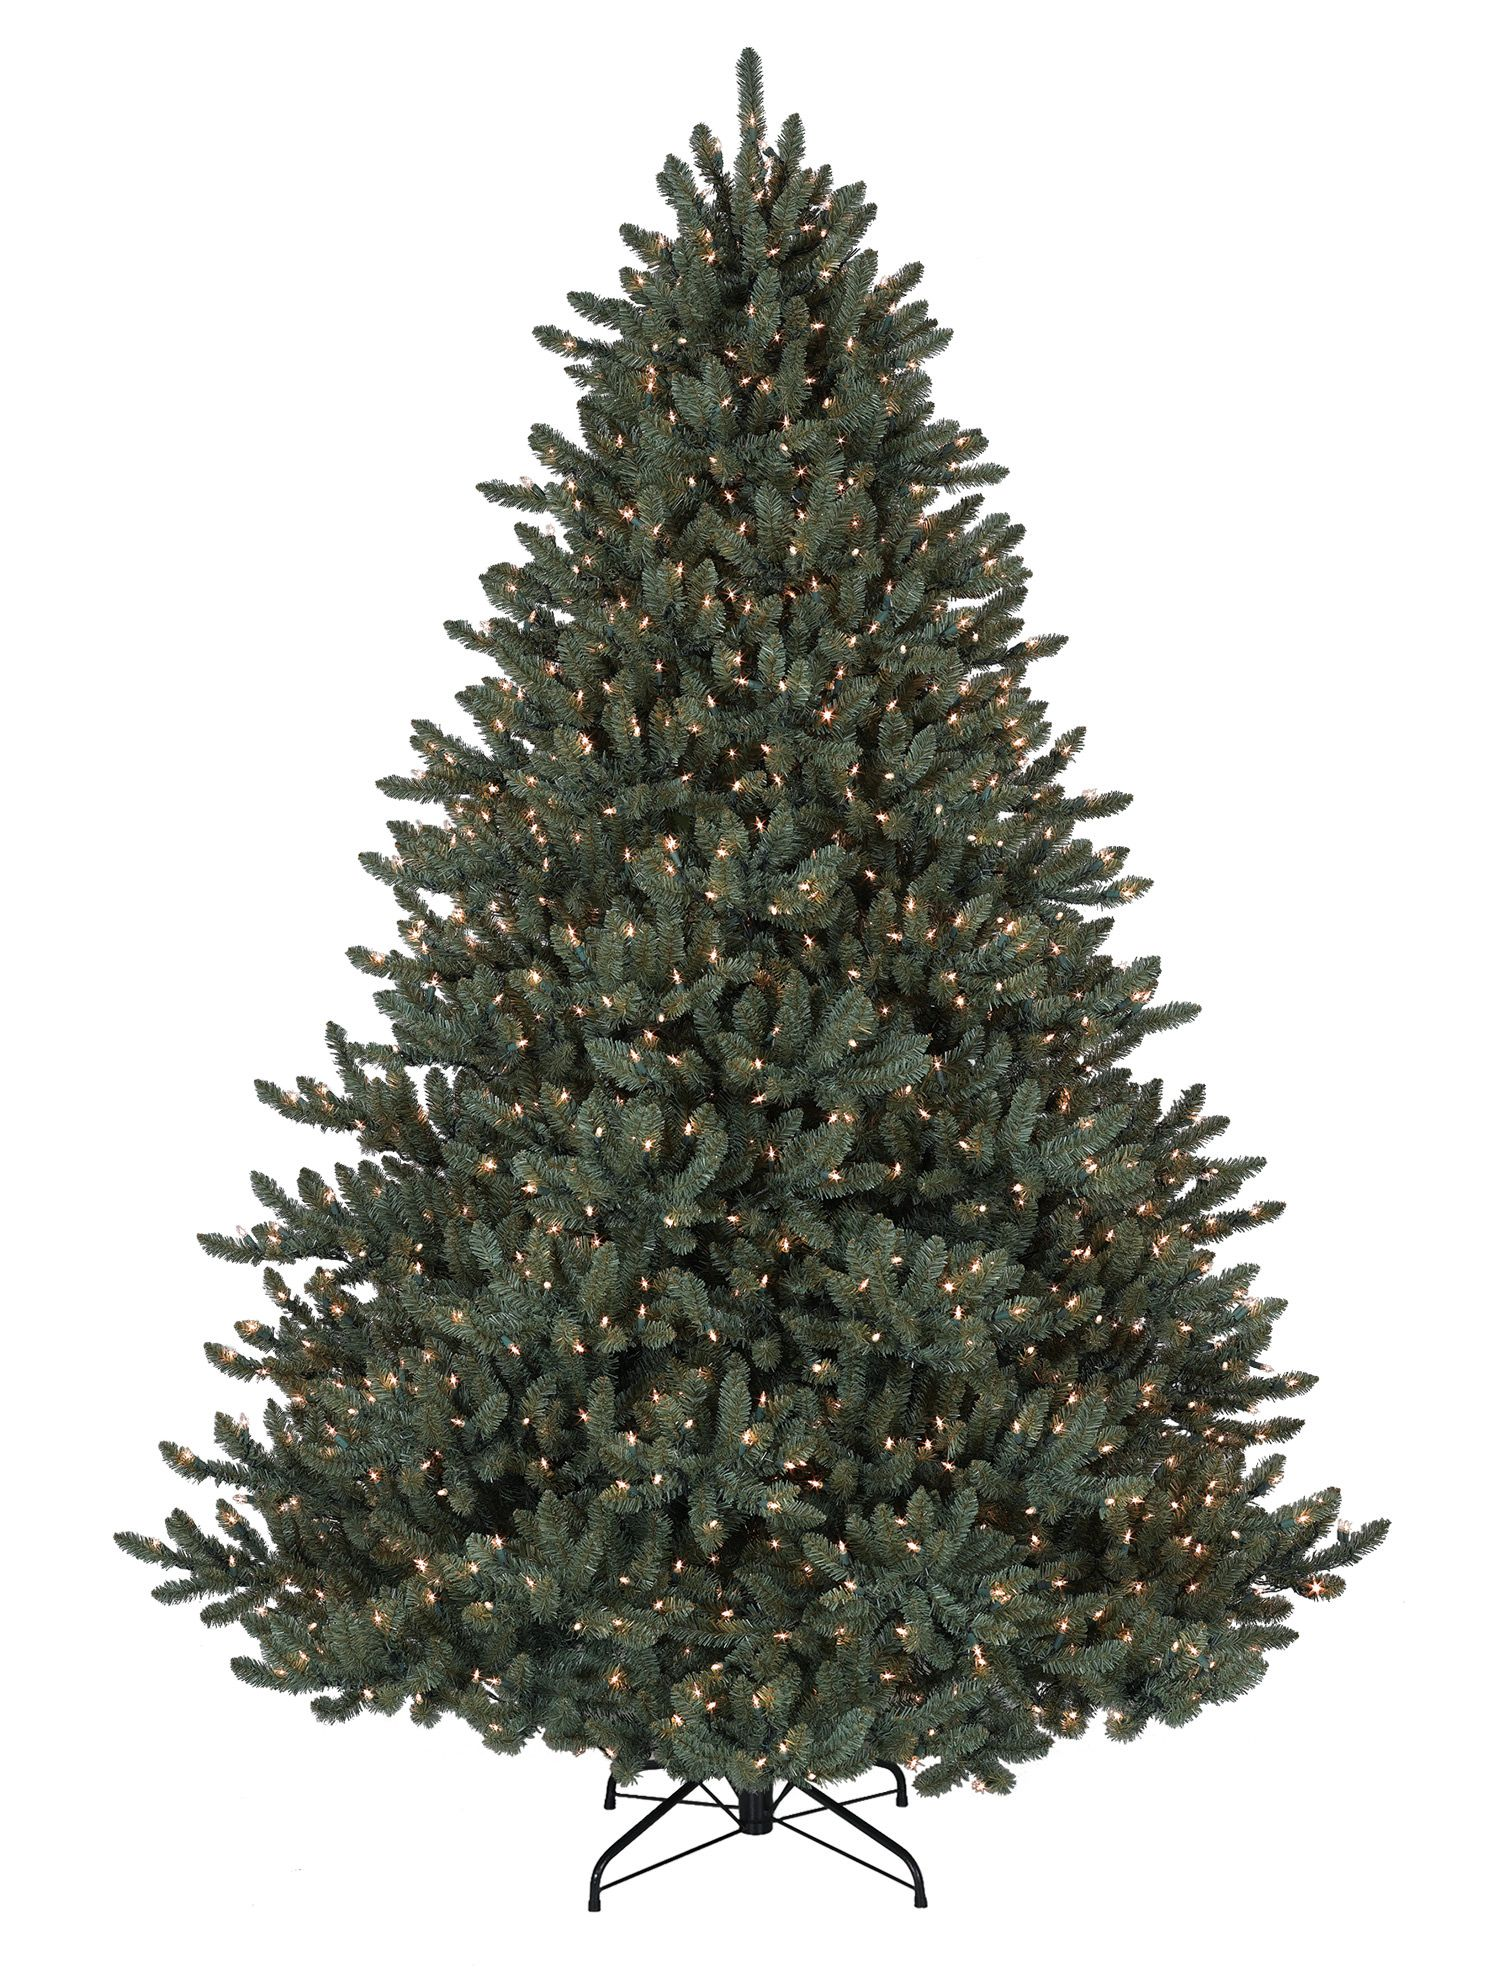 Blue Spruce Artificial Christmas Tree Balsam Hill Reviews Look Good Looking For A New This Year